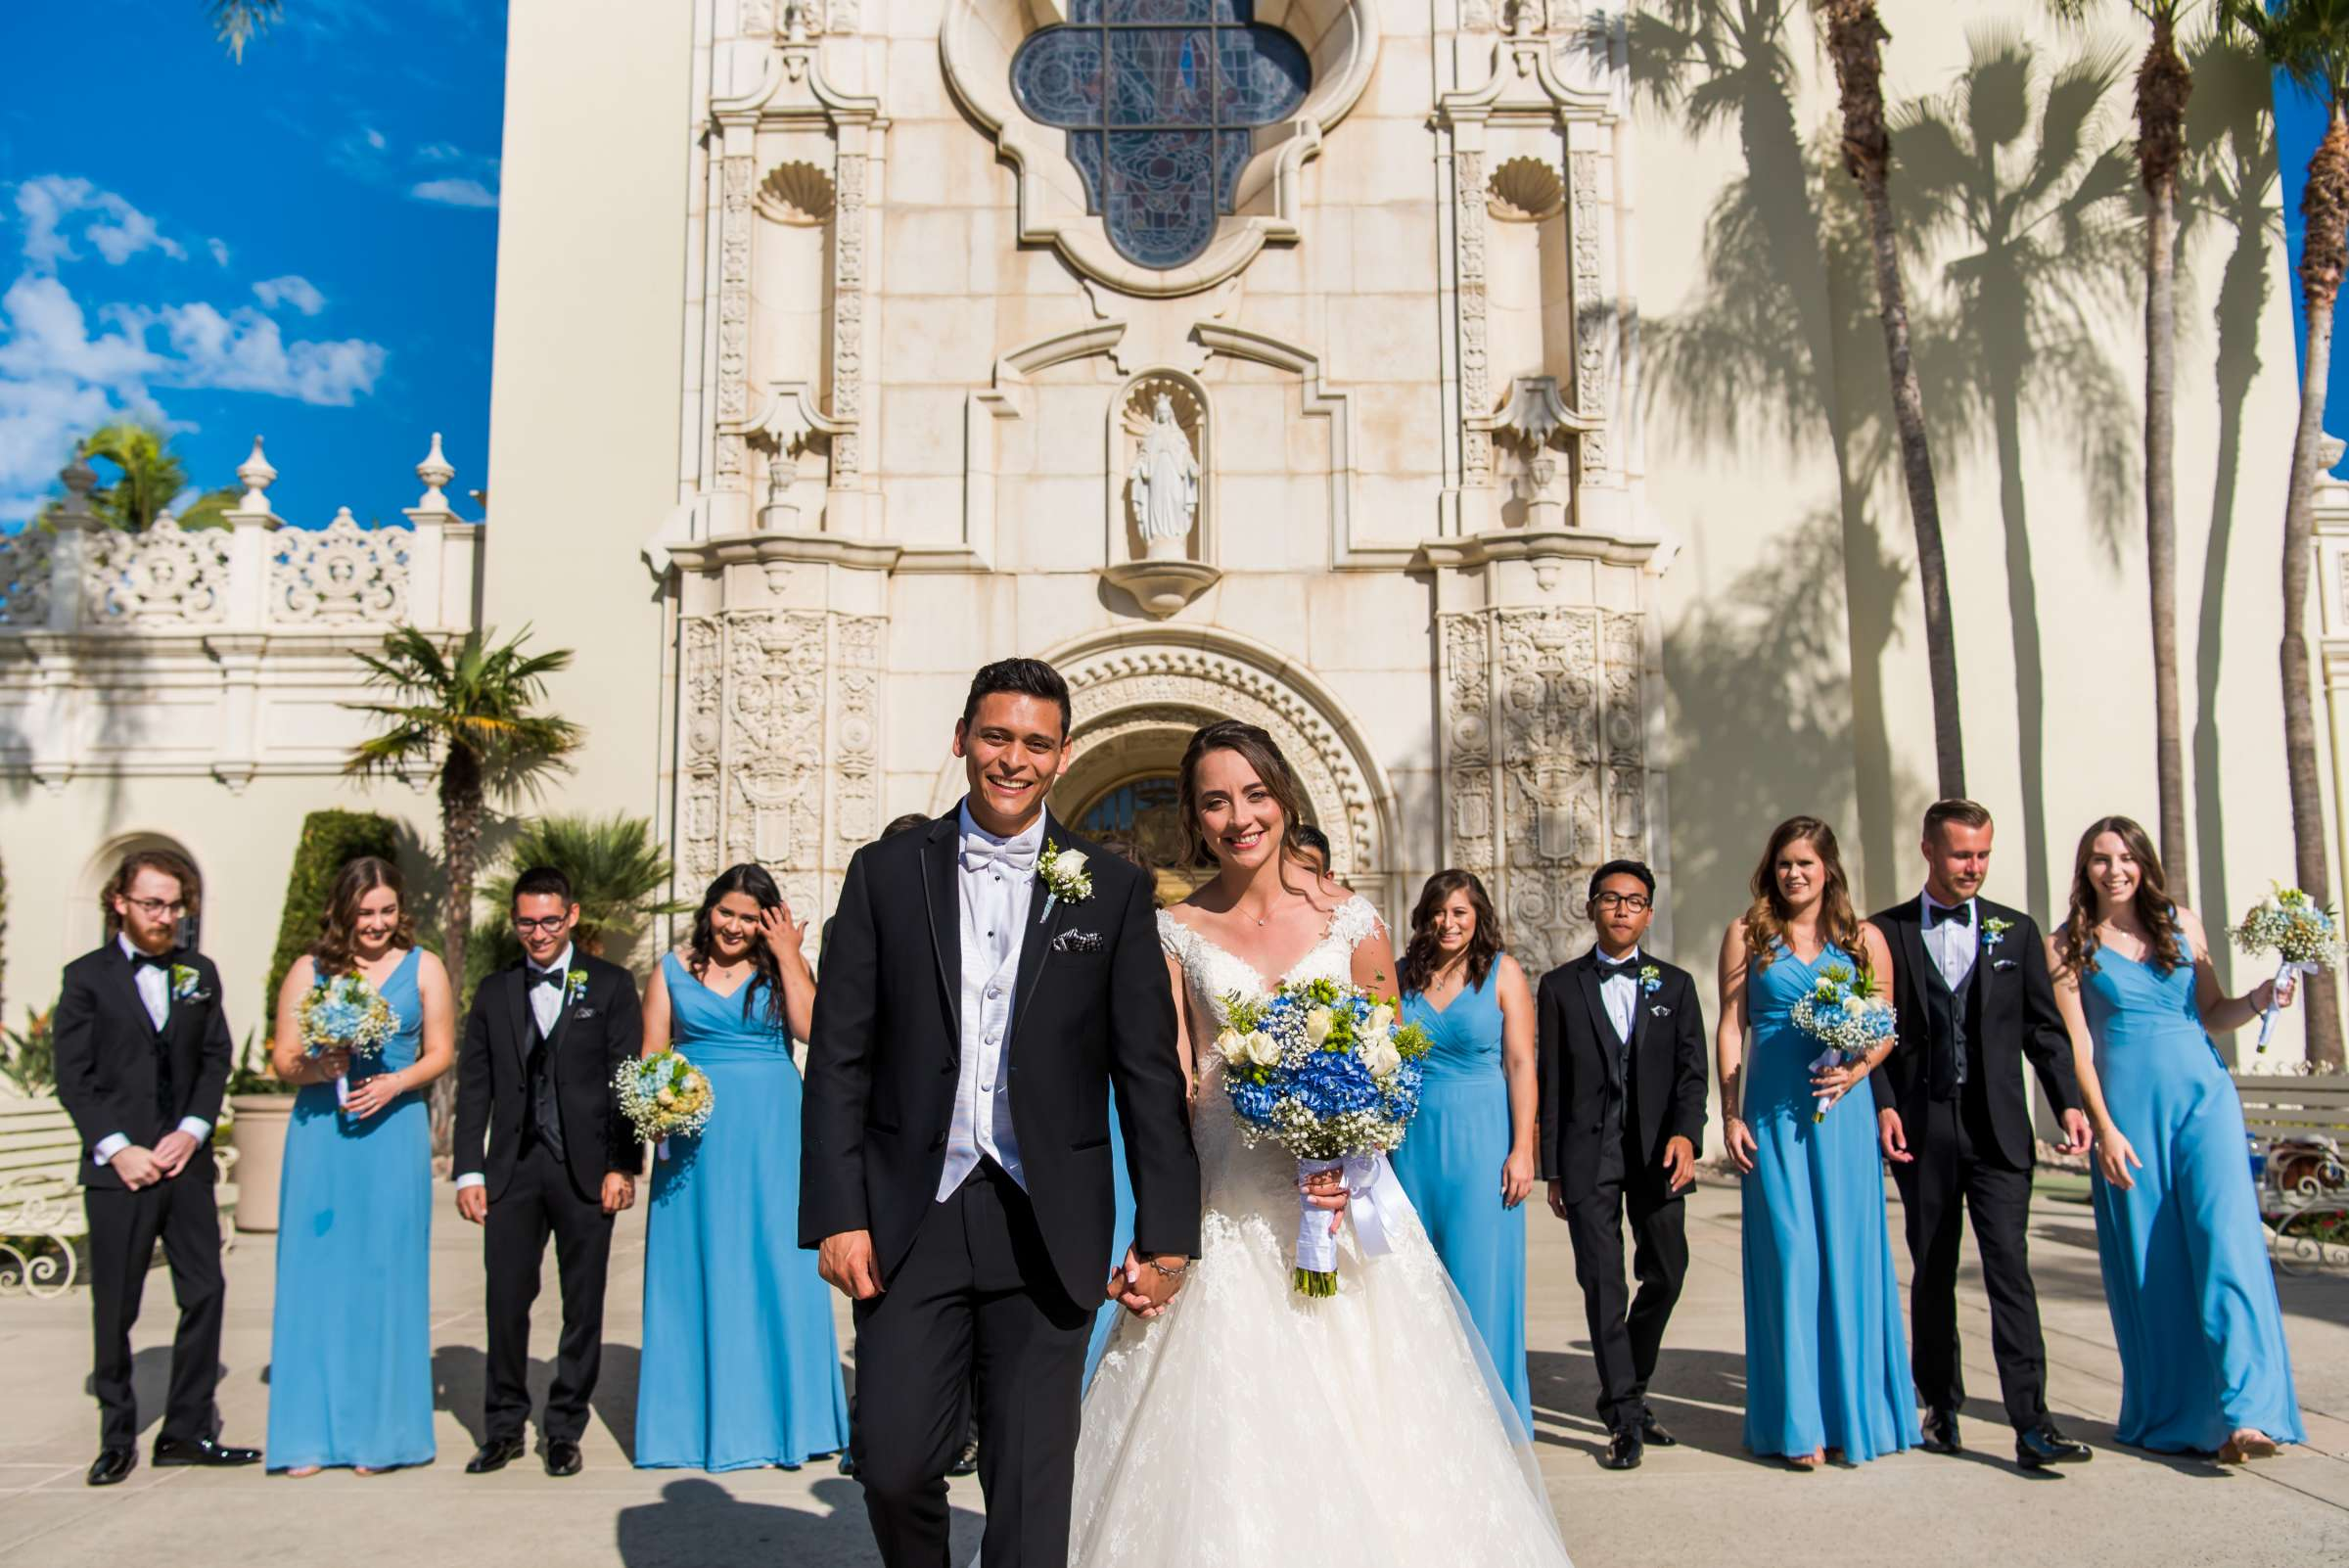 The Immaculata Wedding, Arianna and Jonah Wedding Photo #72 by True Photography